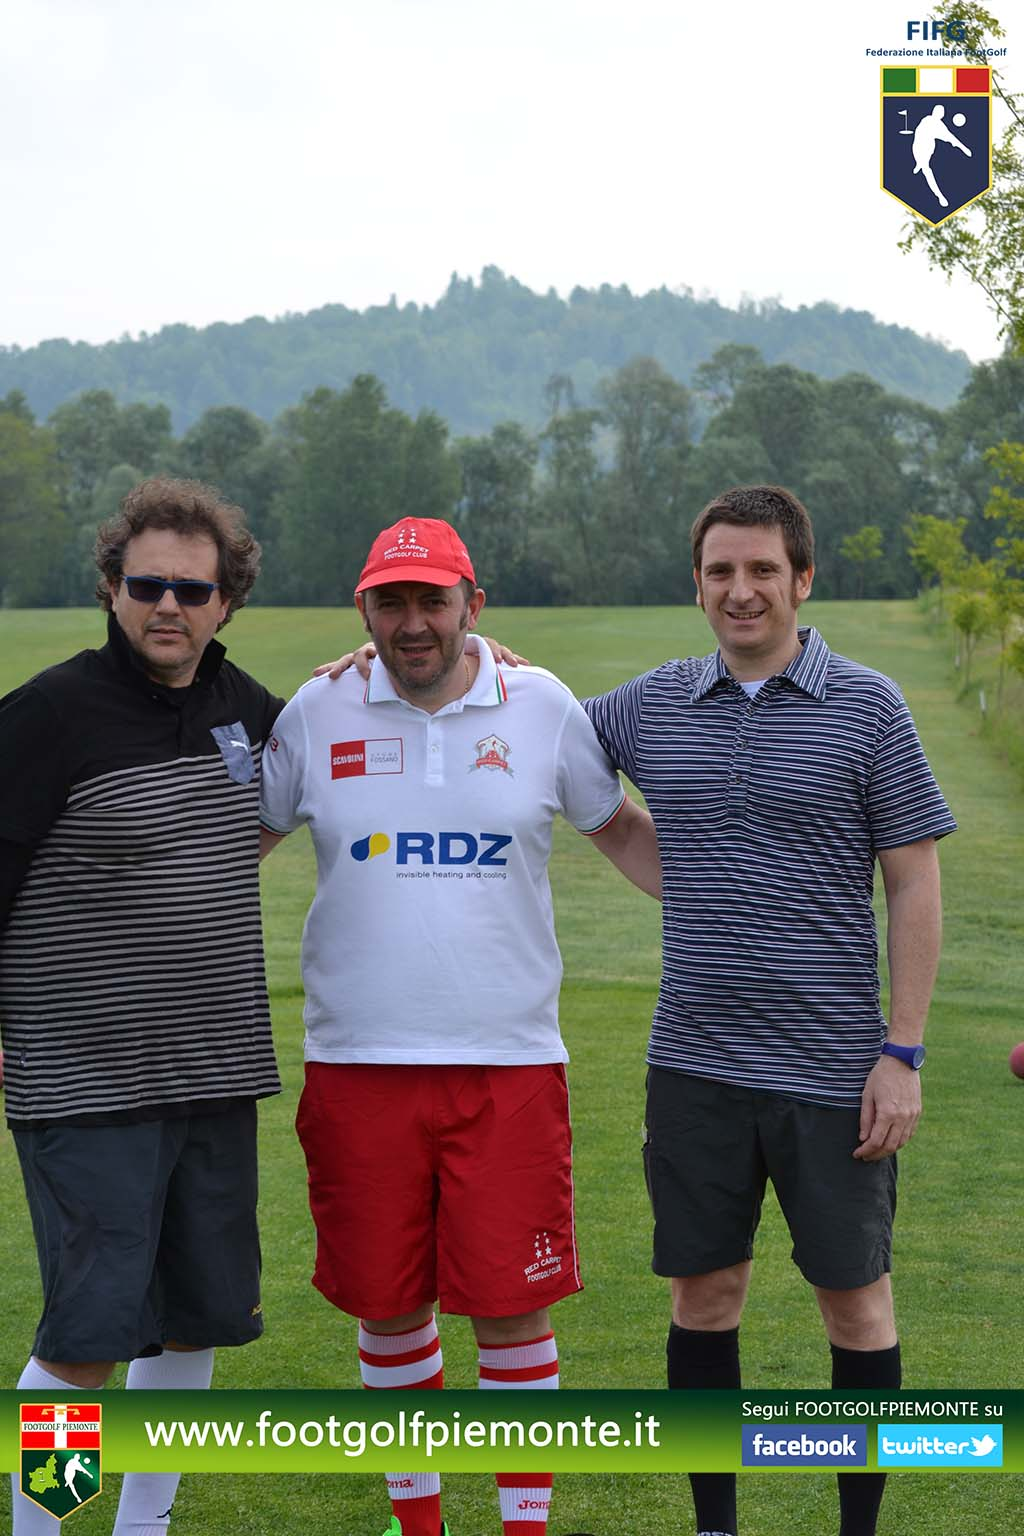 FOTO 9 Regions' Cup Footgolf Piemonte 2016 Golf Città di Asti (At) 30apr16-2